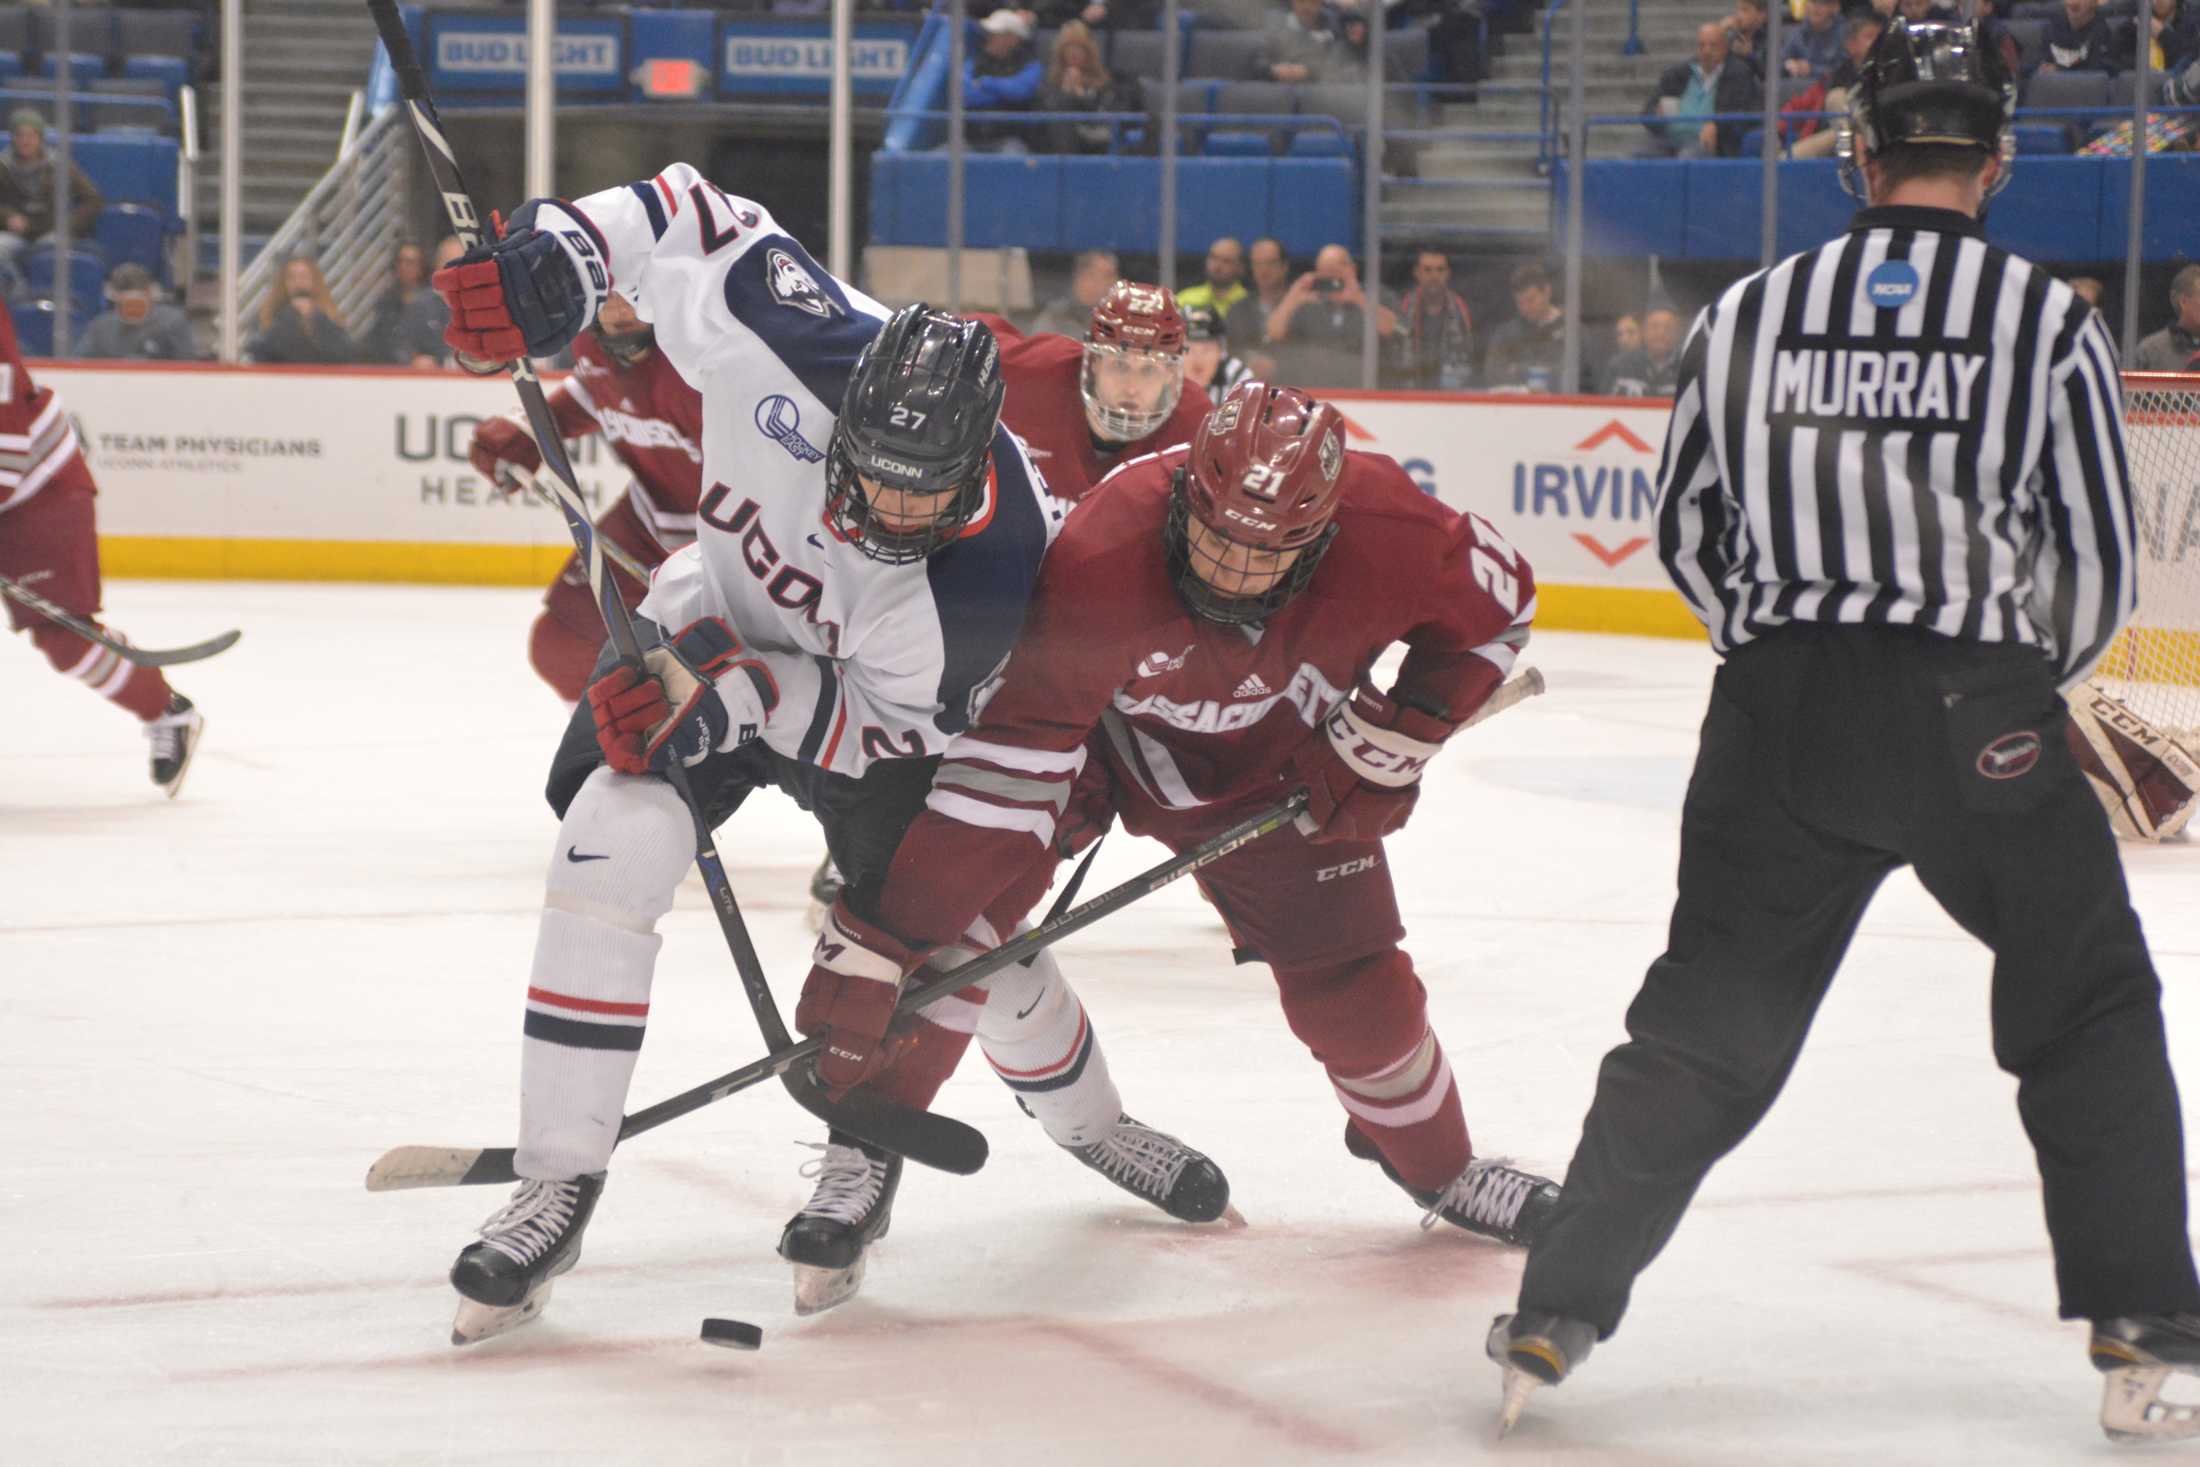 UConn Men's Hockey plays against UMass in the XL Center Thursday night. The Minutemen defeated the Huskies 3-2. Spencer Naas scored the first goal in period one and Jesse Schwartz scored the second goal in period three. (Nicholas Hampton/The Daily Campus)